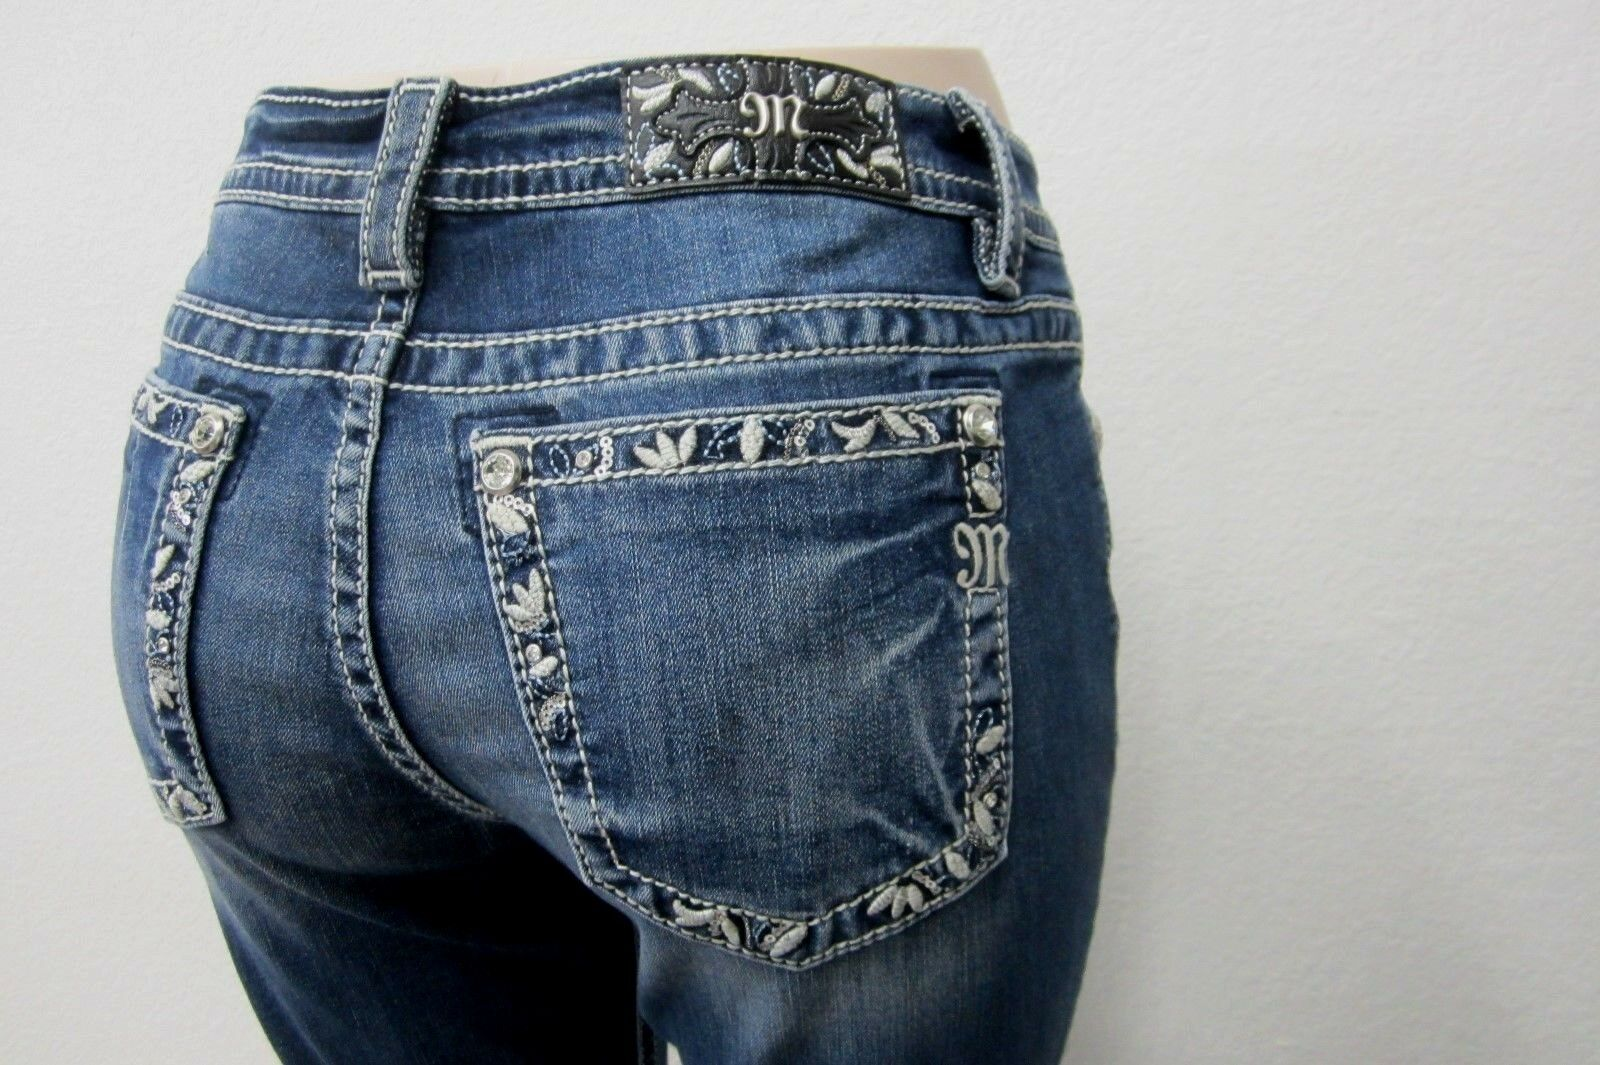 NWT Miss Me Women's bluee Floral Embroidered Border Jeans - Boot Cut  - MY3013B2